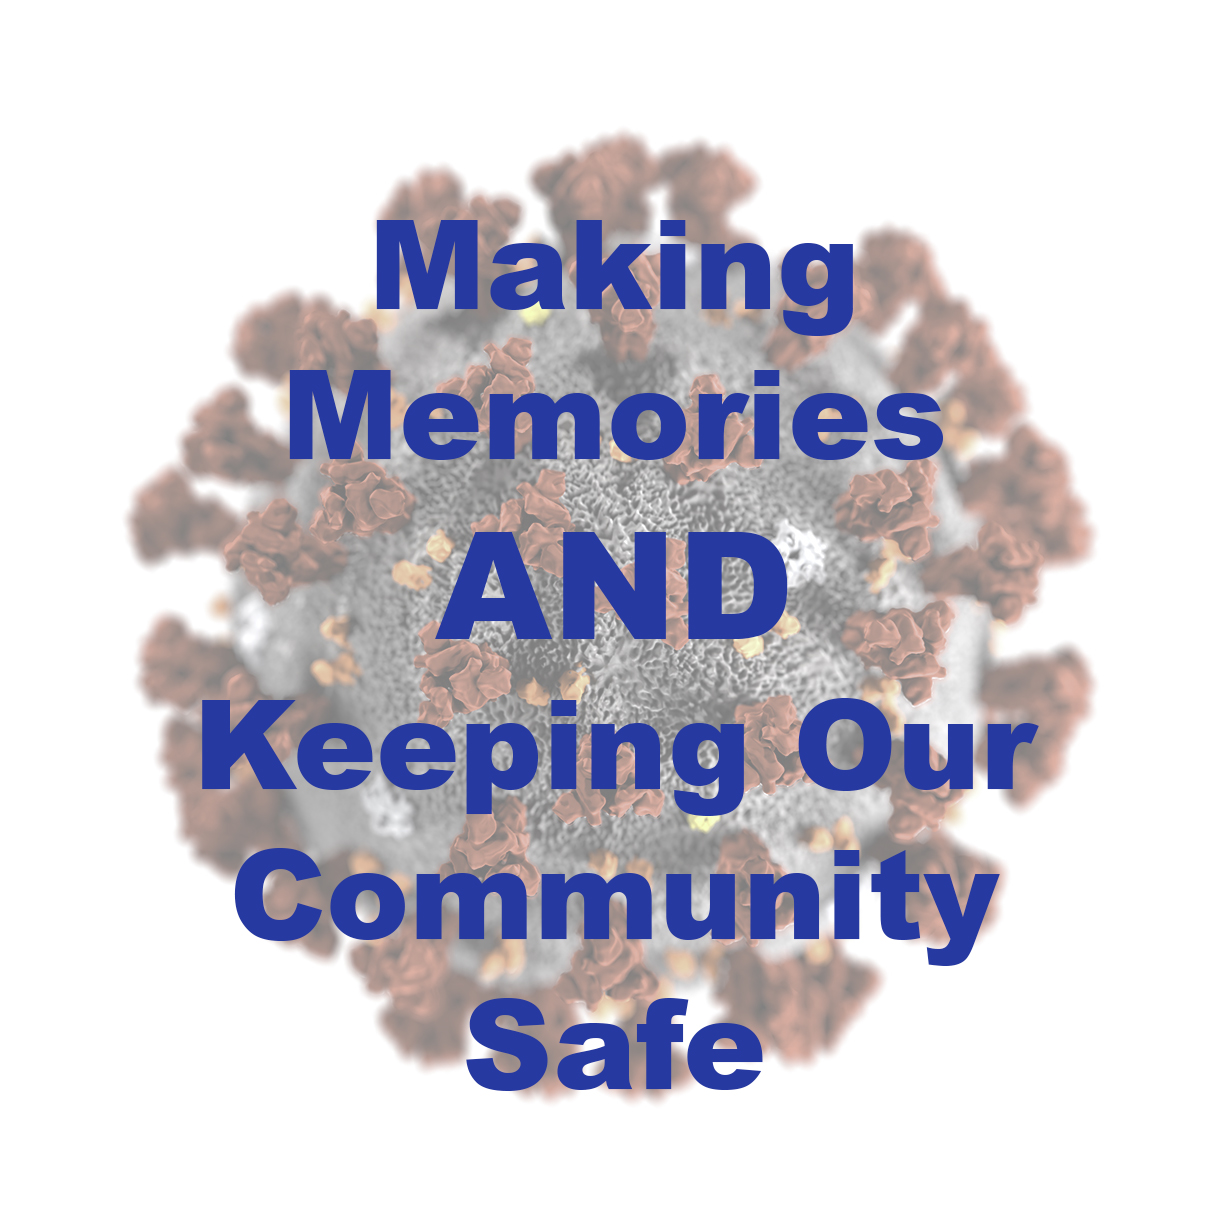 Making memories while keeping our community safe